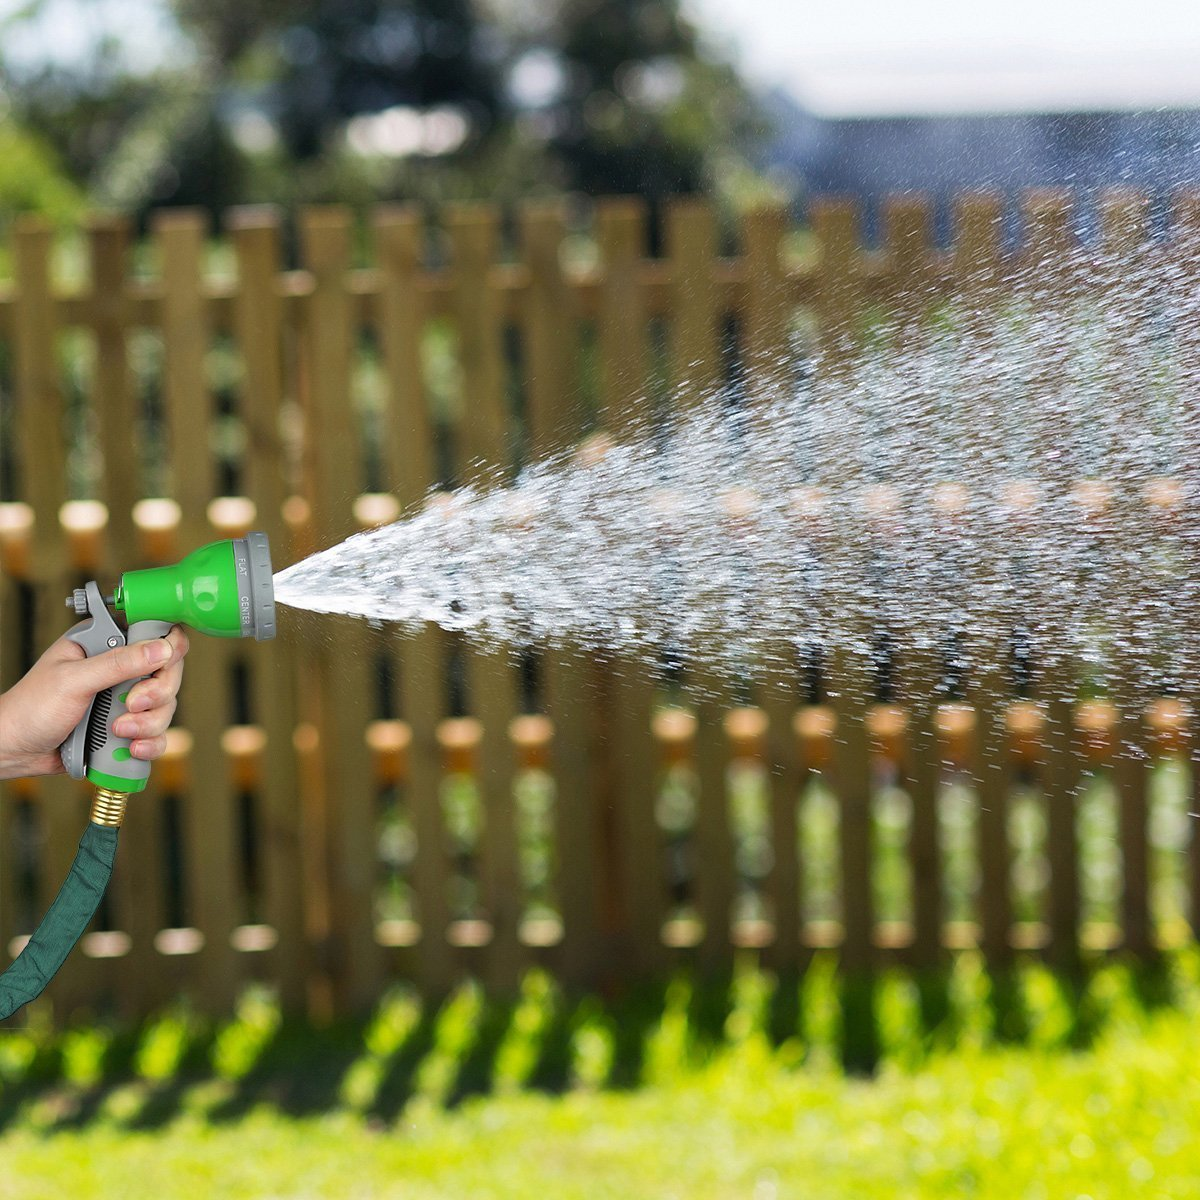 Amazon.com: 1byone Flat Garden Hose with 7 Function Spray Nozzle and ...